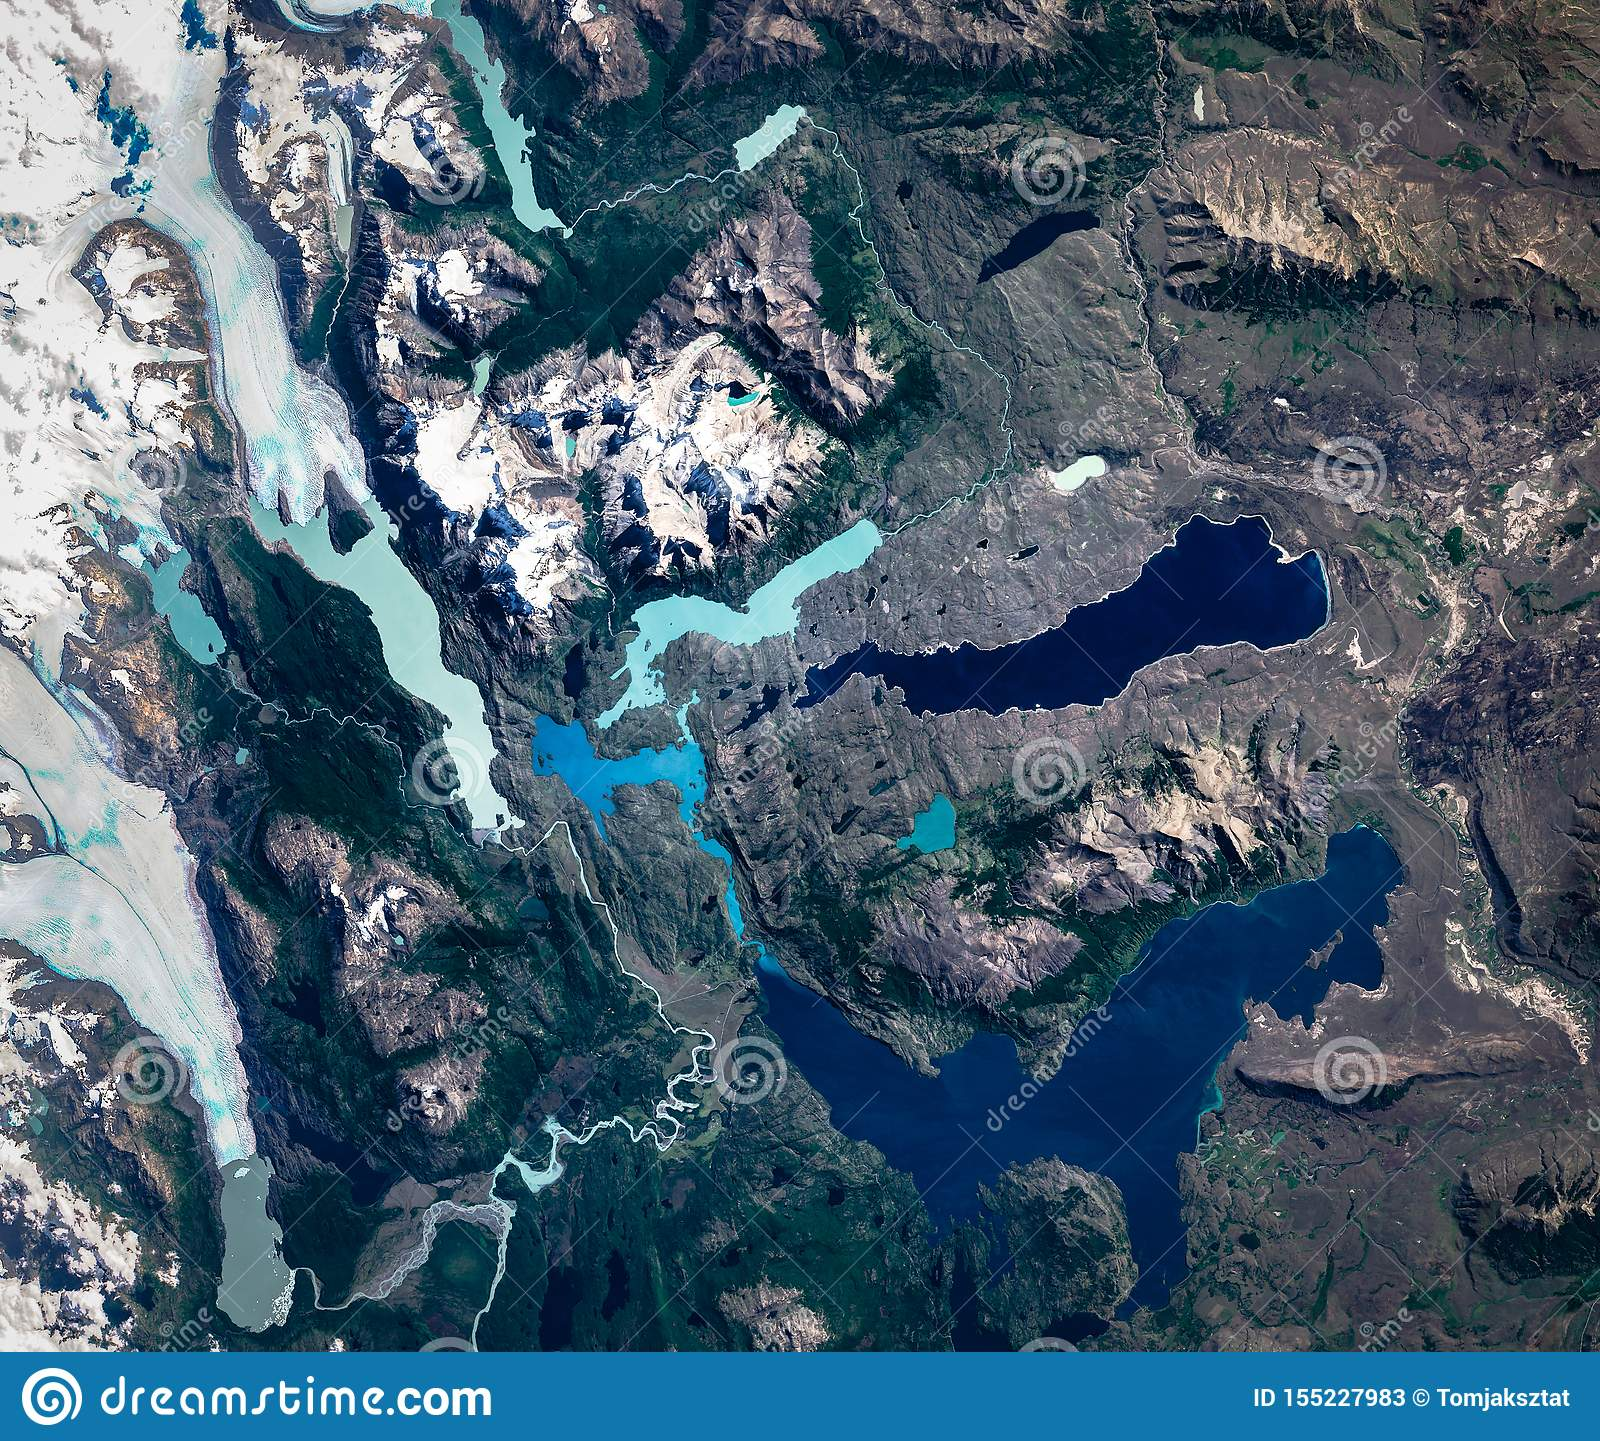 High Resolution Satellite Image Of Torres Del Paine National